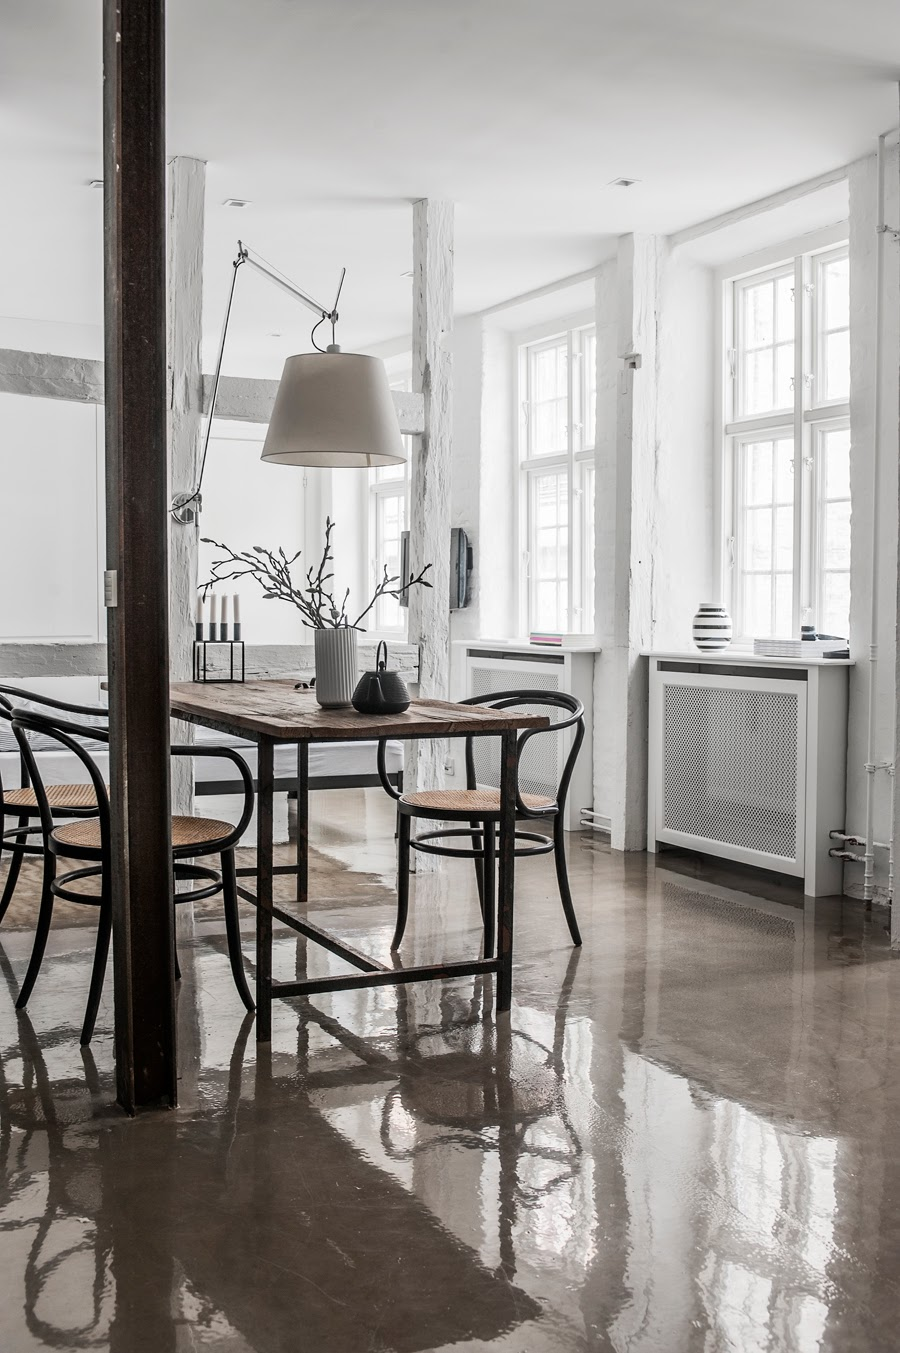 glossy shiny concrete floors in a dining room